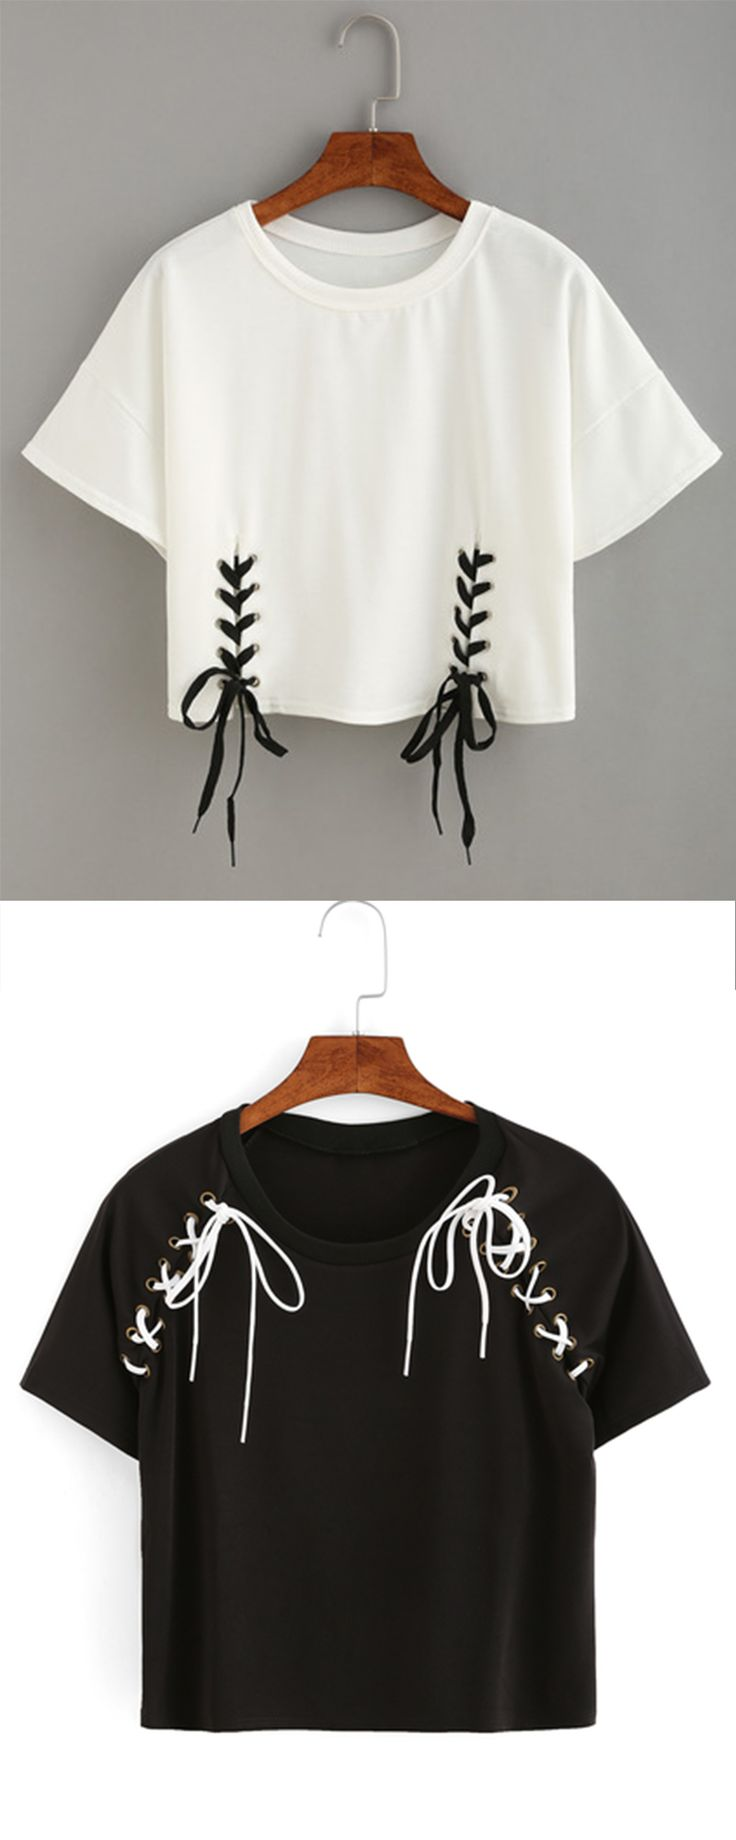 25 best ideas about diy shirt on pinterest cutting